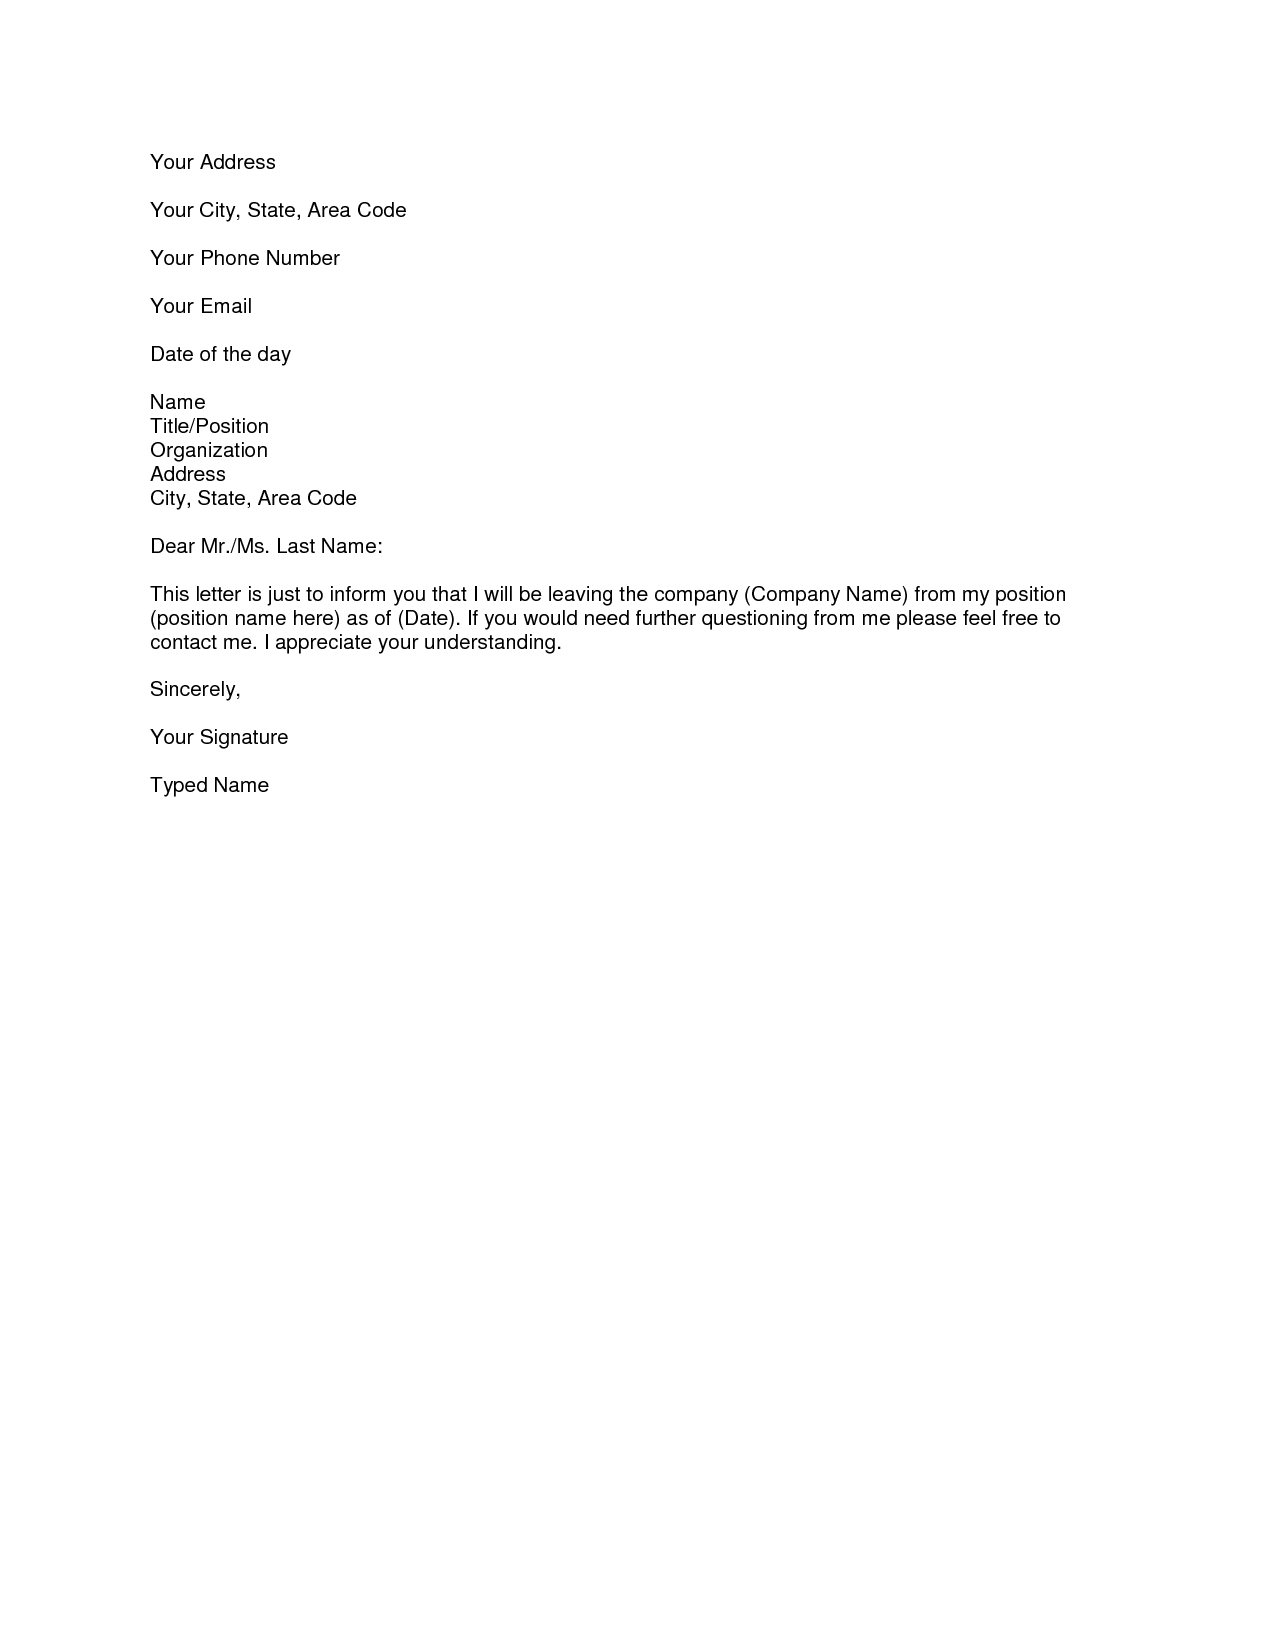 This printable resignation letter shortens an original notice period